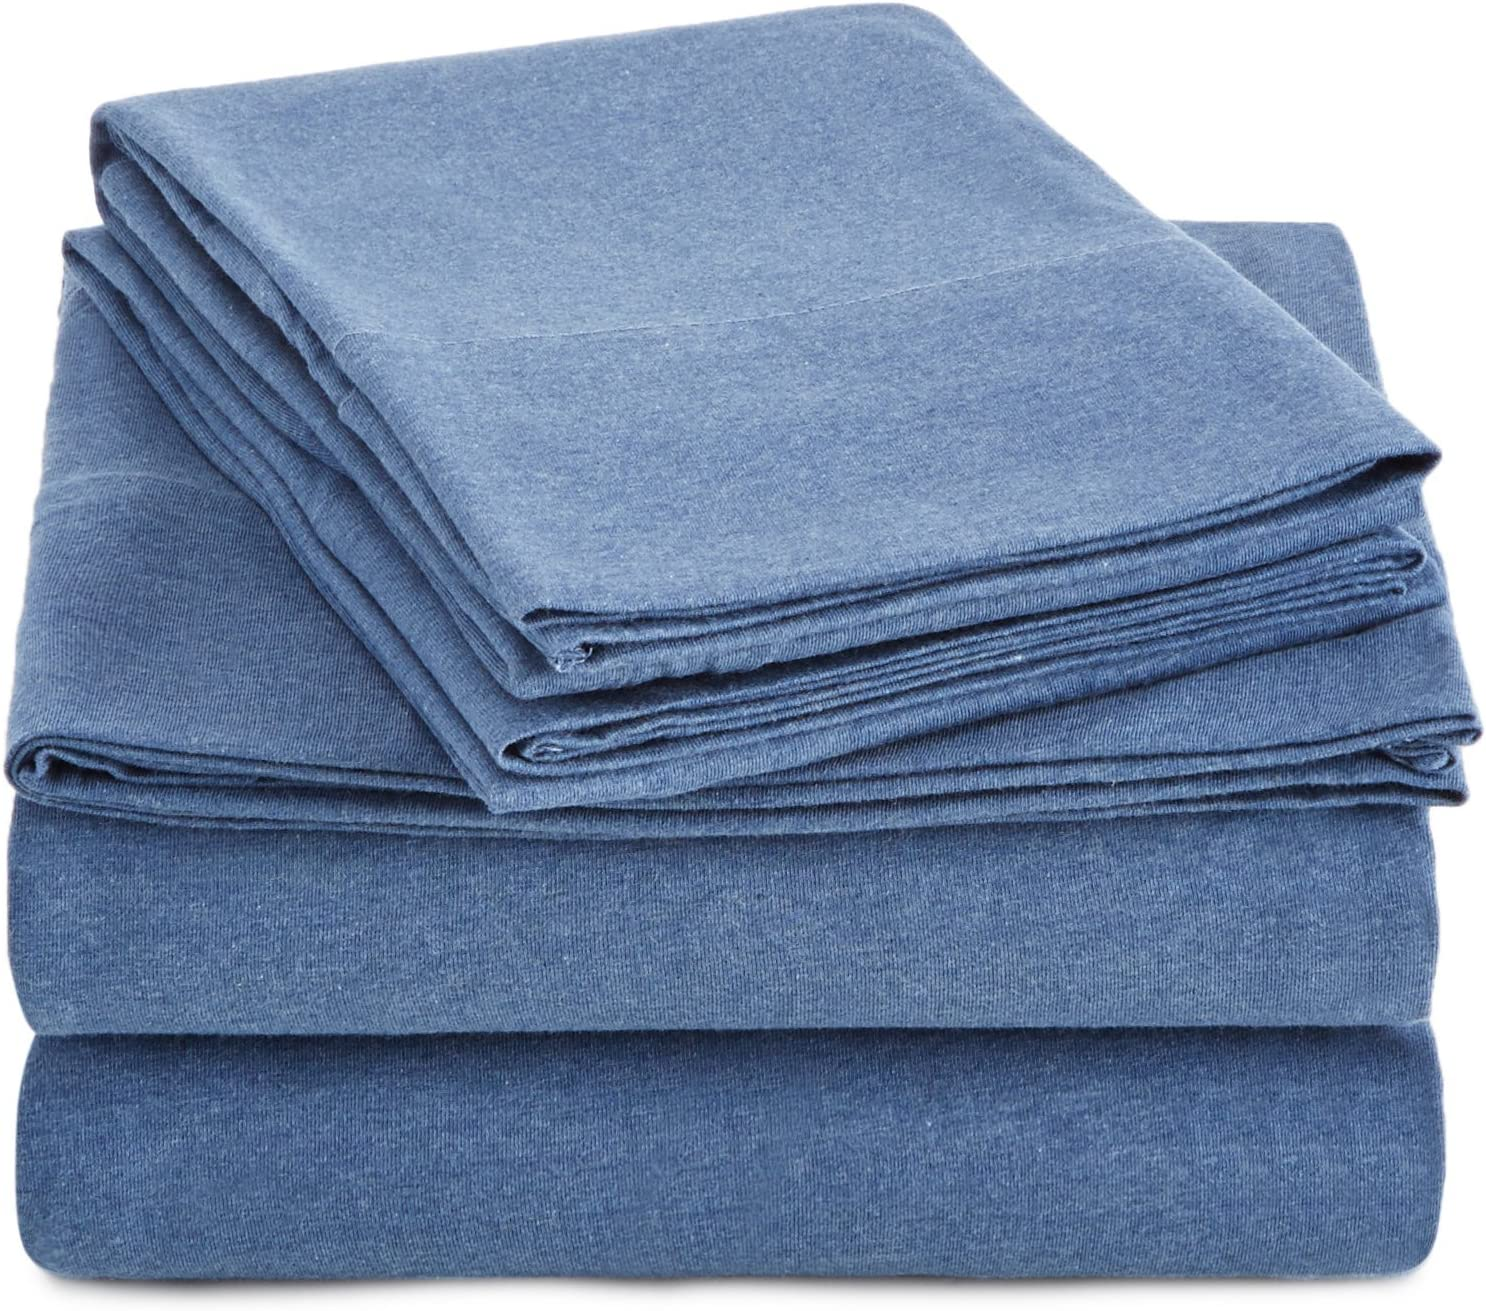 AmazonBasics Heather Cotton Jersey Bed Sheet Set - Queen, Chambray Blue